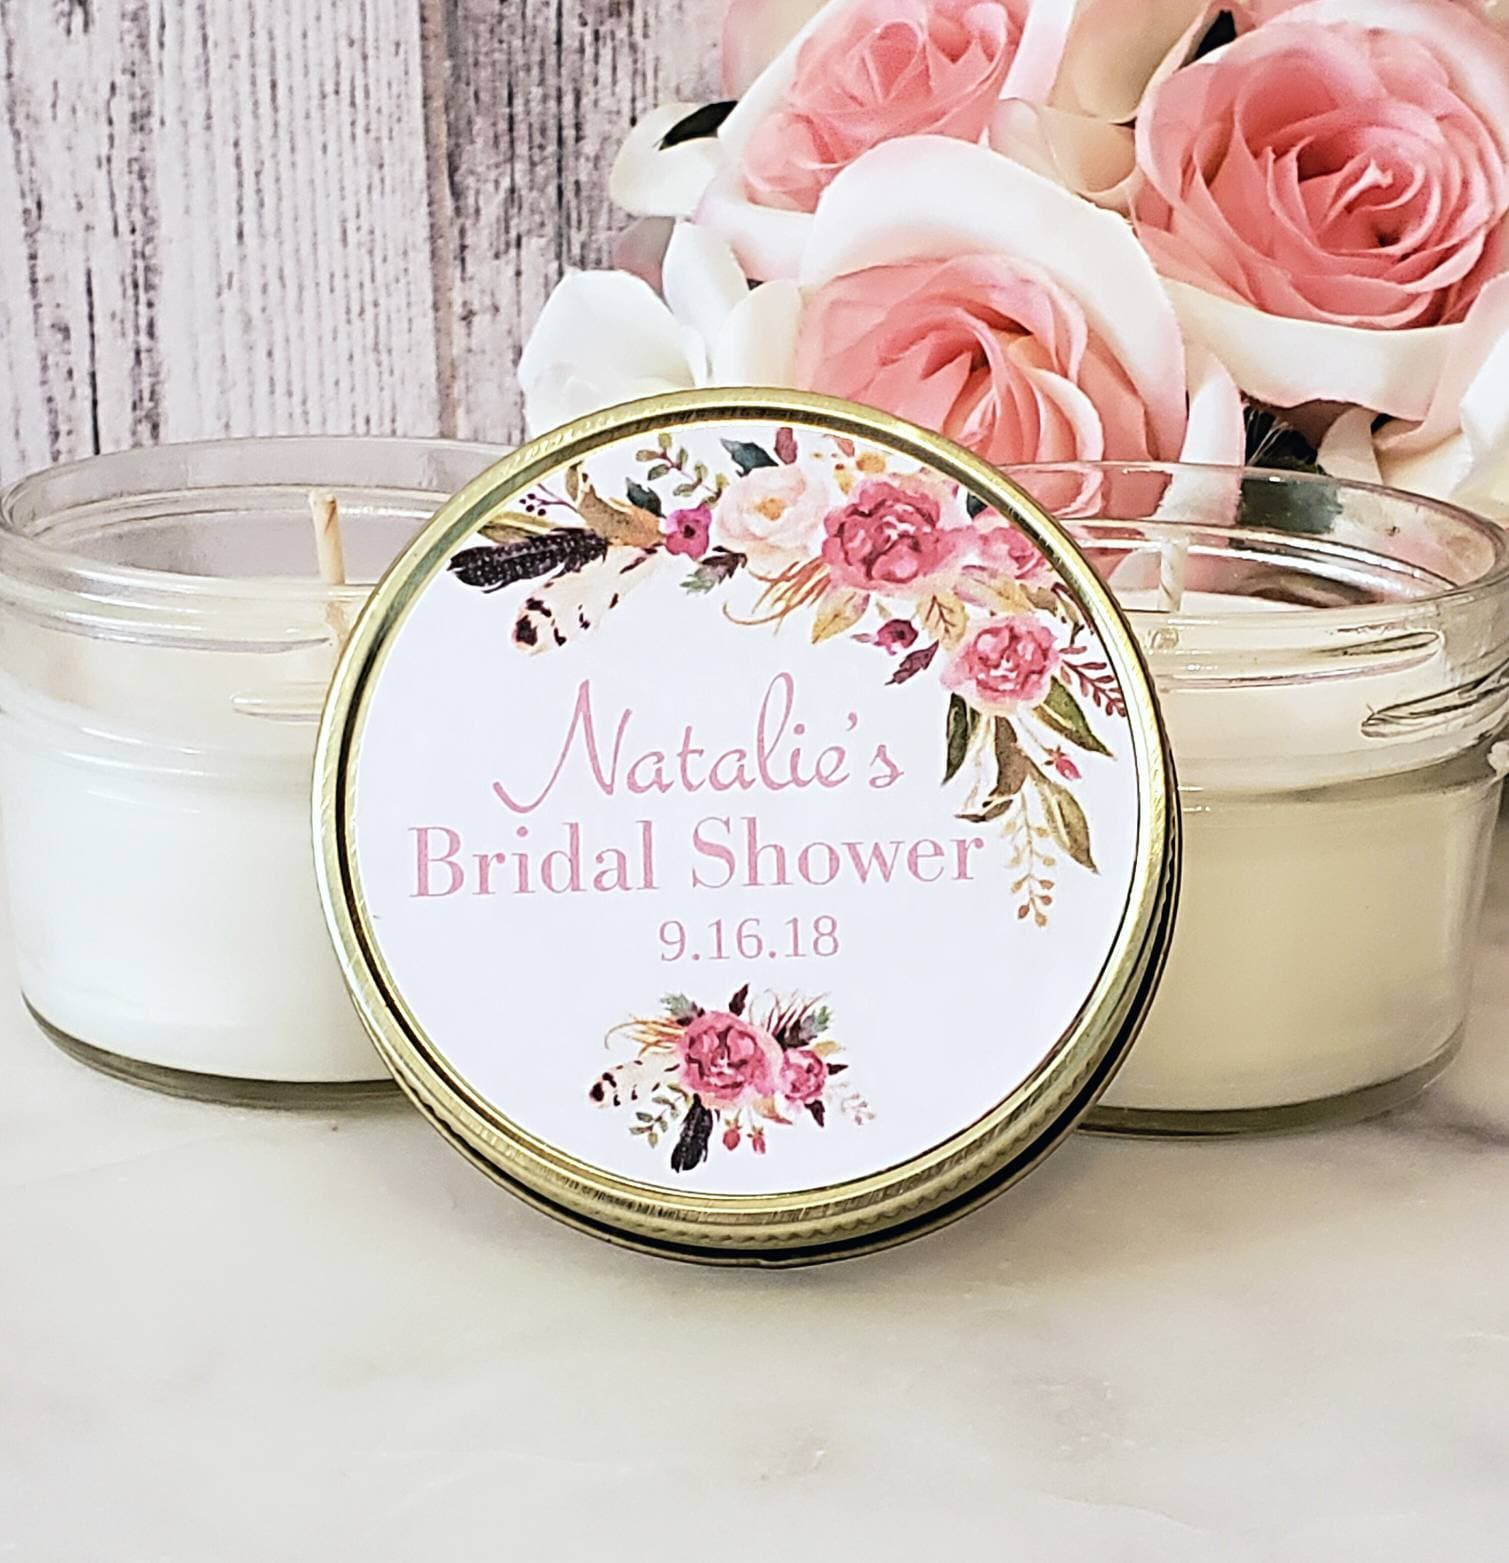 Blush Bridal Shower Favors - Bridal Shower Candle Favors - Blush ...